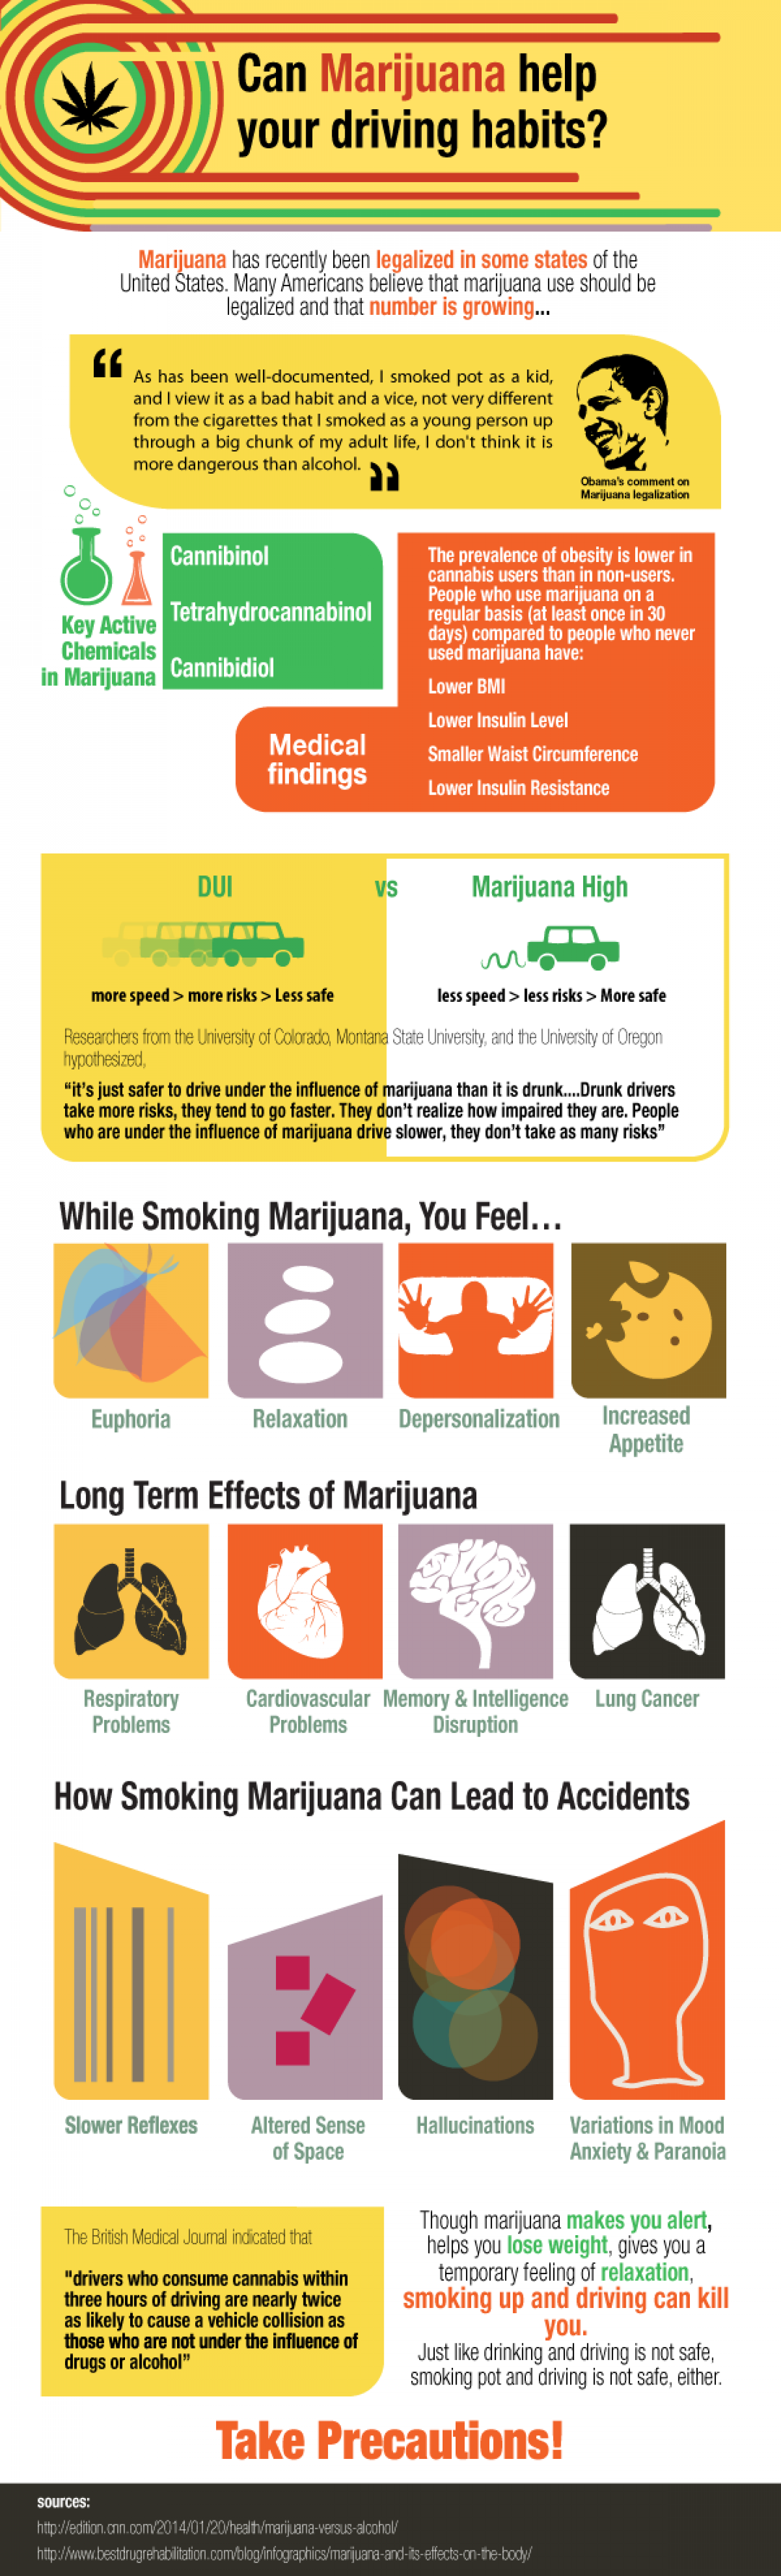 Can Marijuana Help Your Driving Habits? Infographic